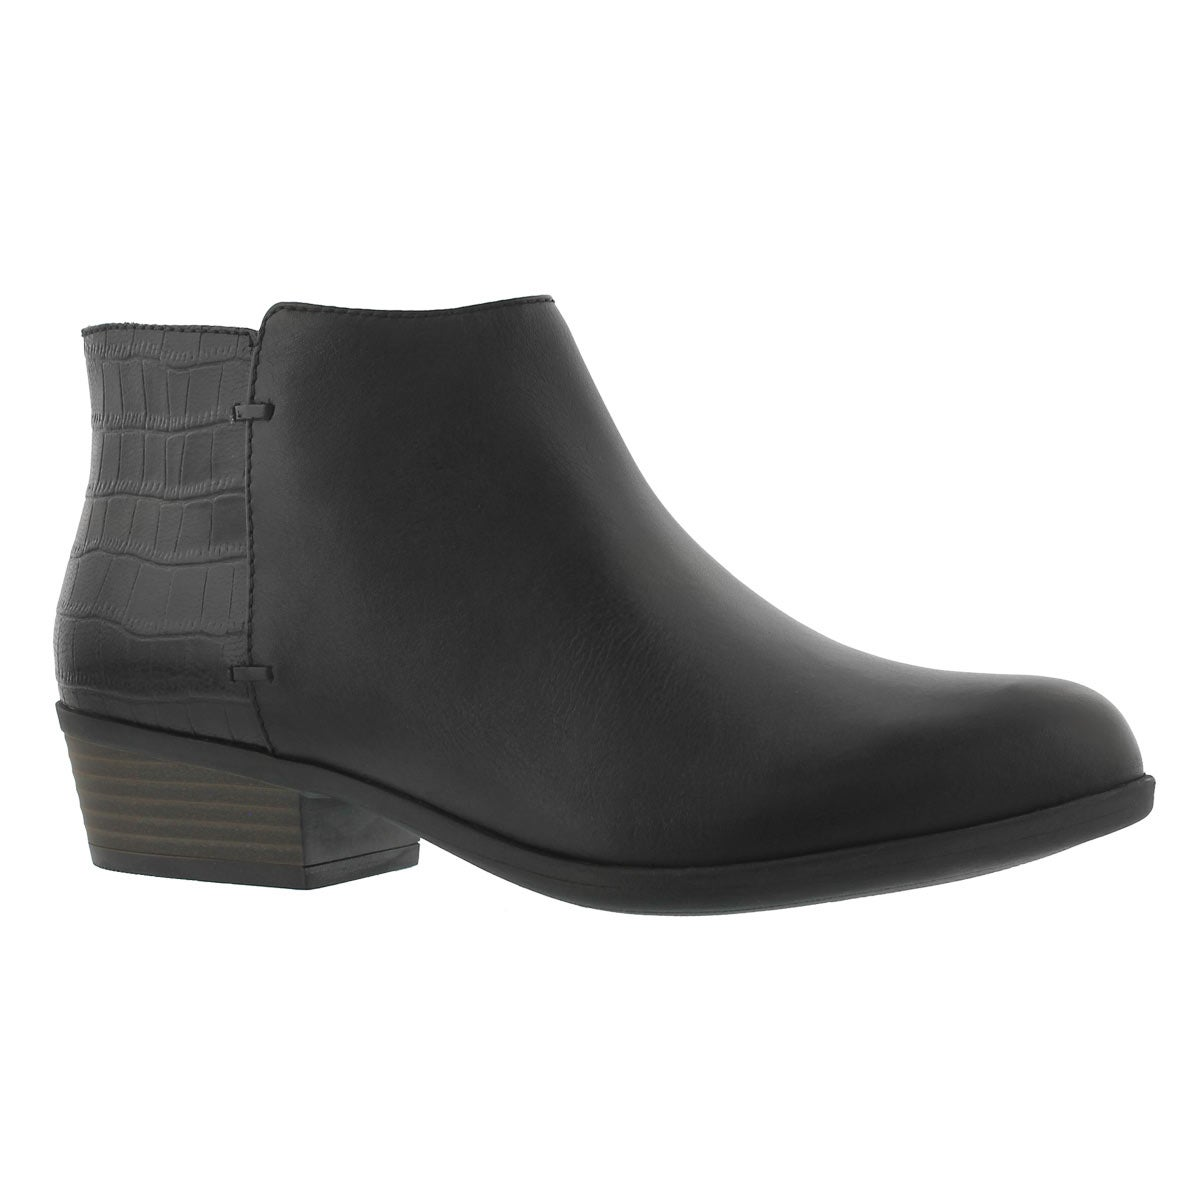 Women's ADDIY ZORA black casual booties